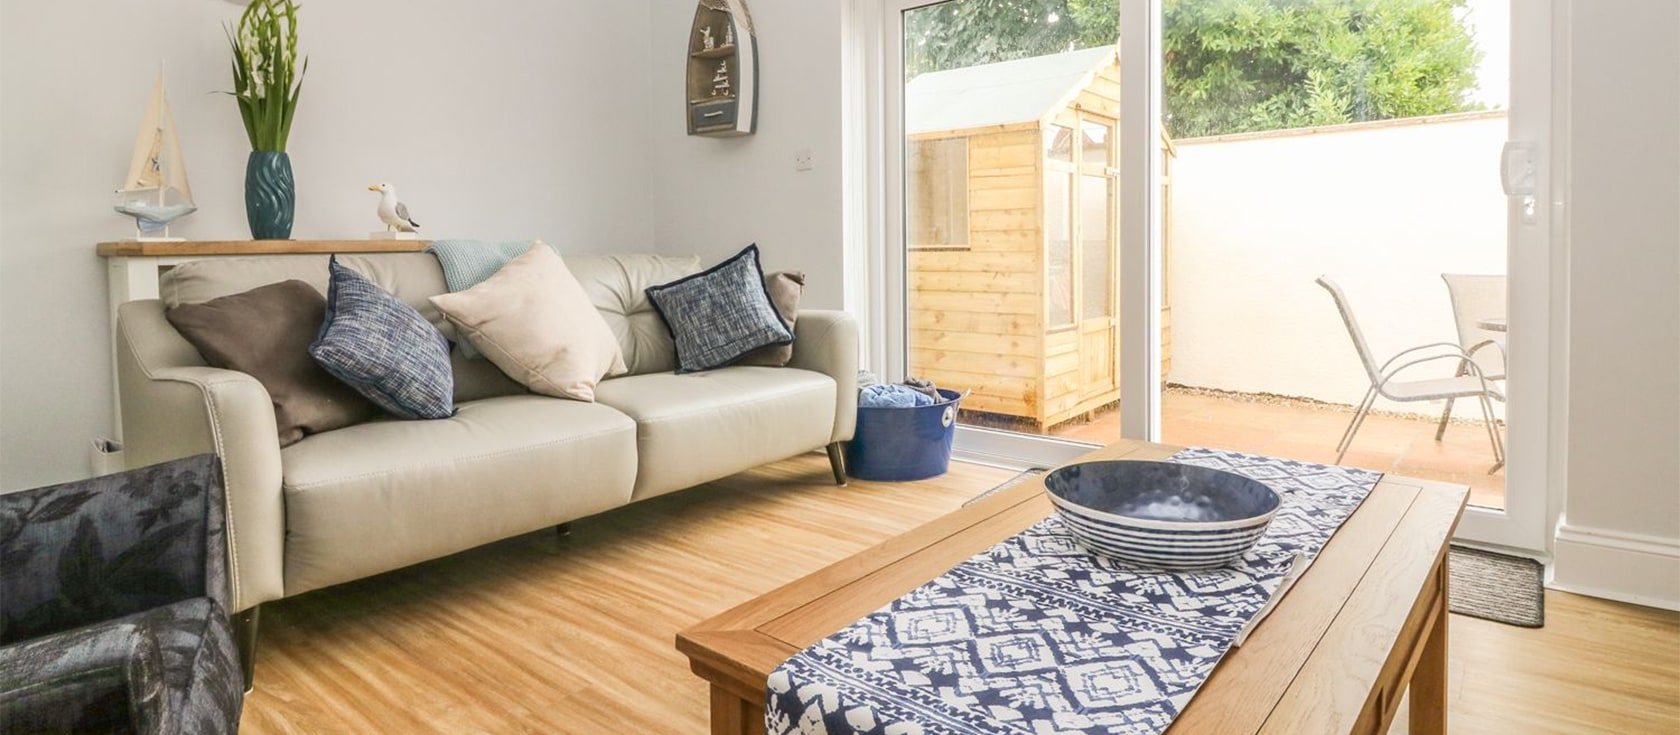 7 The Retreat Paignton Holiday Cottages In Devon Cornwall